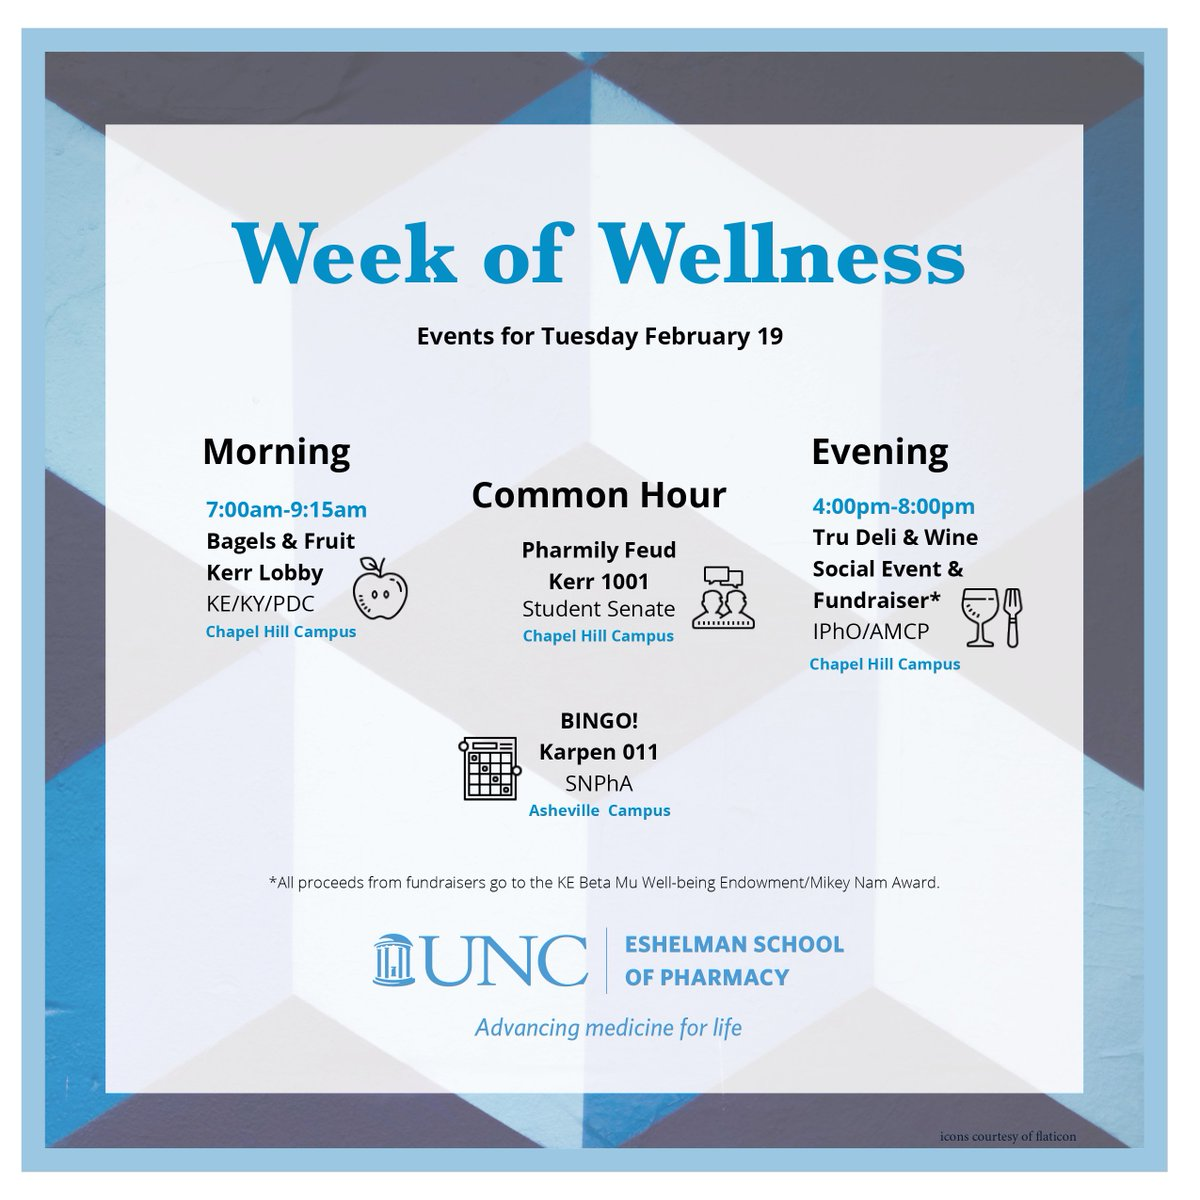 Today is the second day of our Week of Wellness. Check out the awesome events that are going on today! Tag us with #UNCPharmacy to let us know how you're taking part in WoW! https://t.co/2MRj9QIi4x